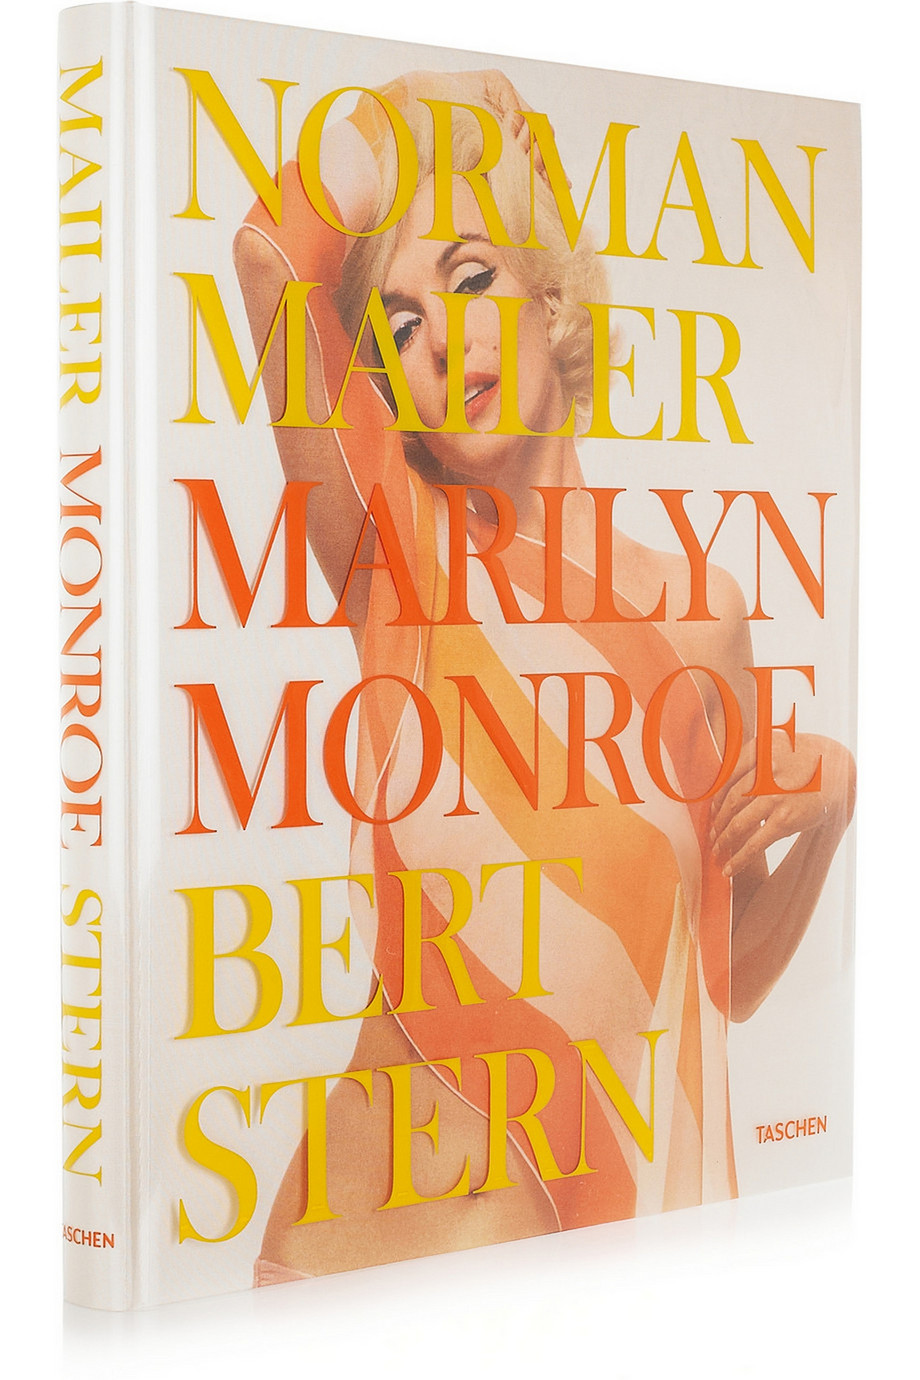 Taschen Norman Mailer, Marilyn Monroe, Bert Stern by Lawrence Schiller Large Hardcover Book